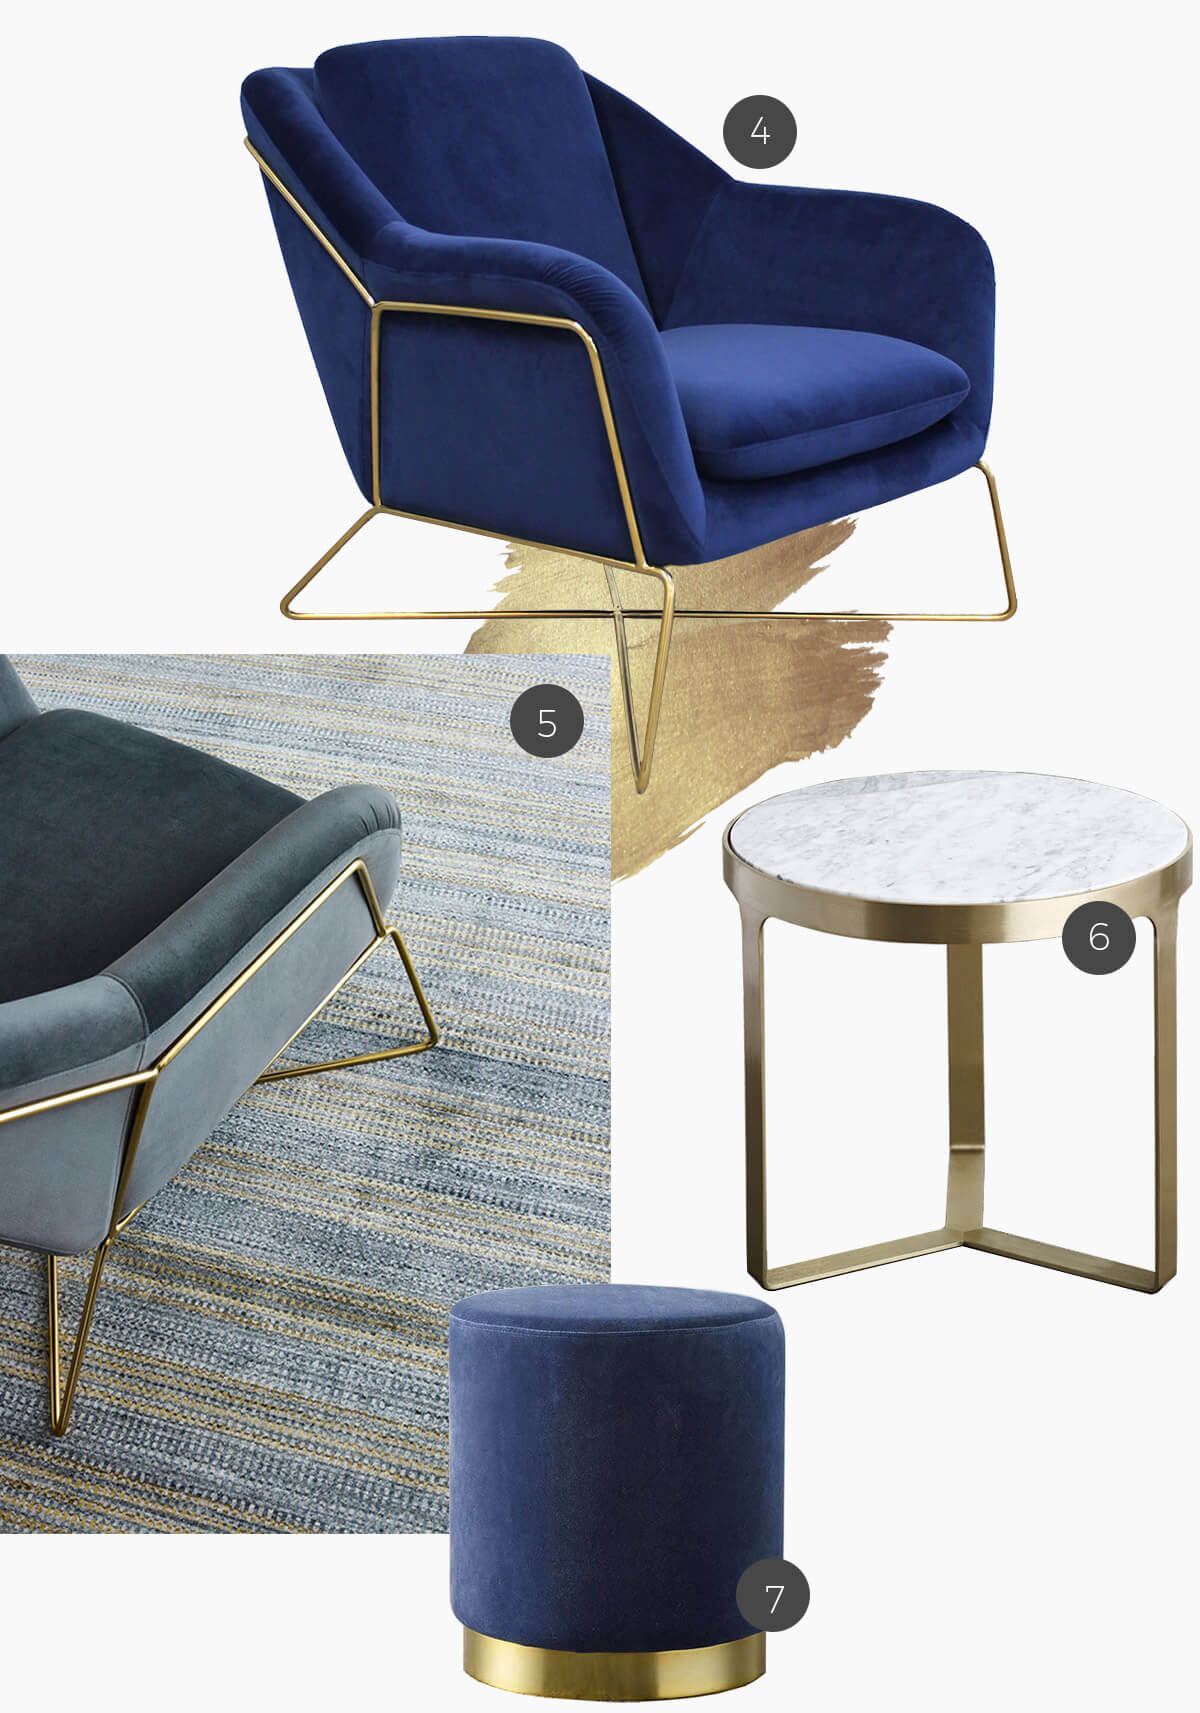 gold accents on rugs and furniture with Navy Velvet Charlotte occasional chair